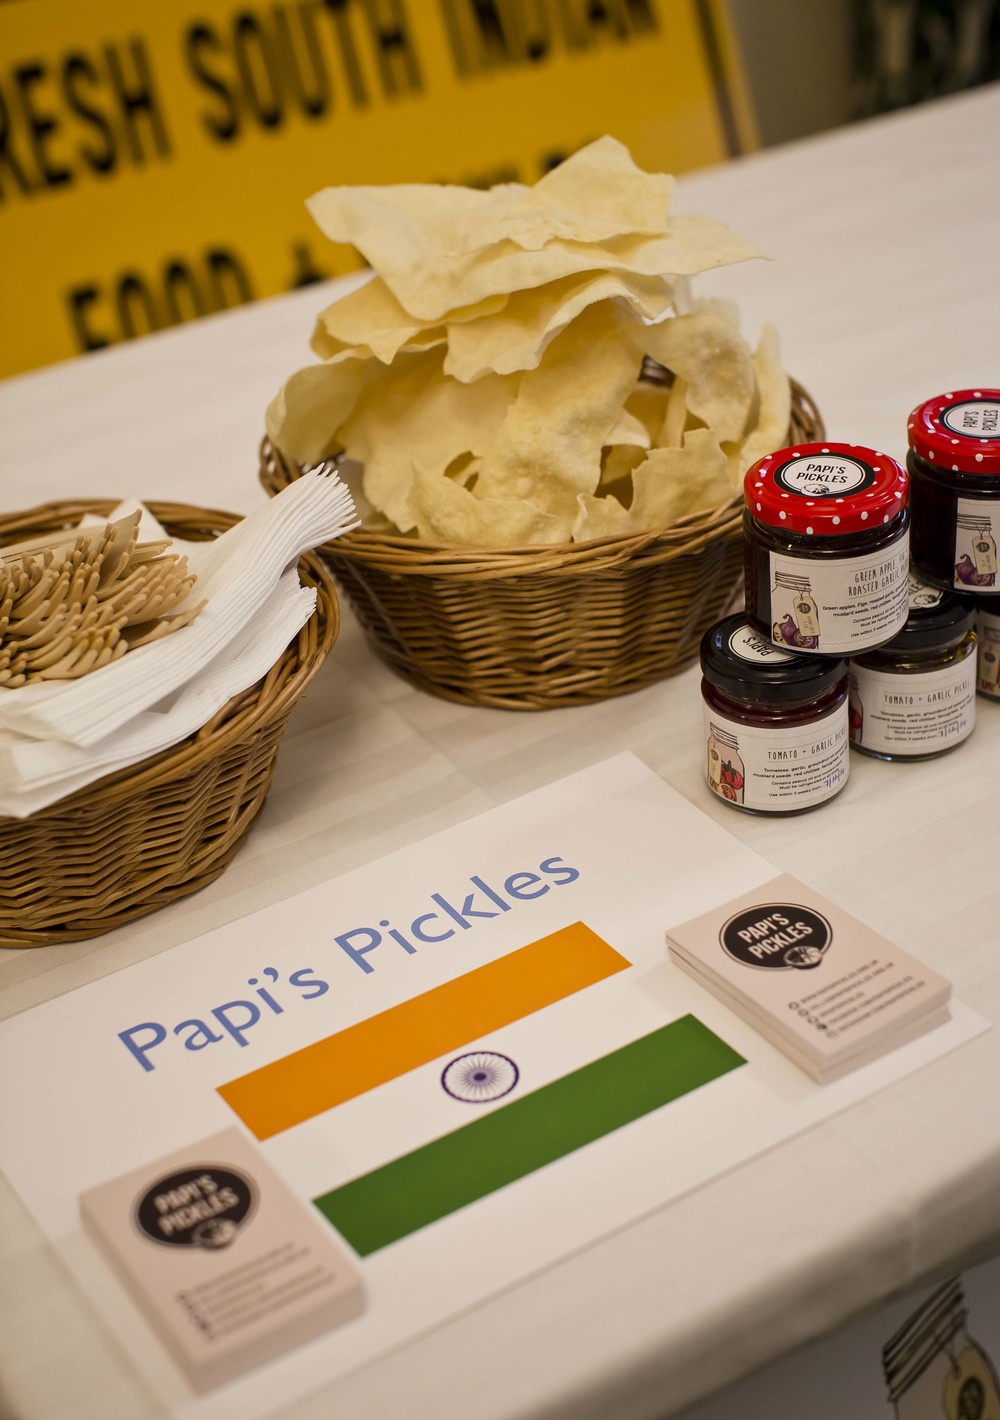 Commonwealth food event 2014-2405.jpg